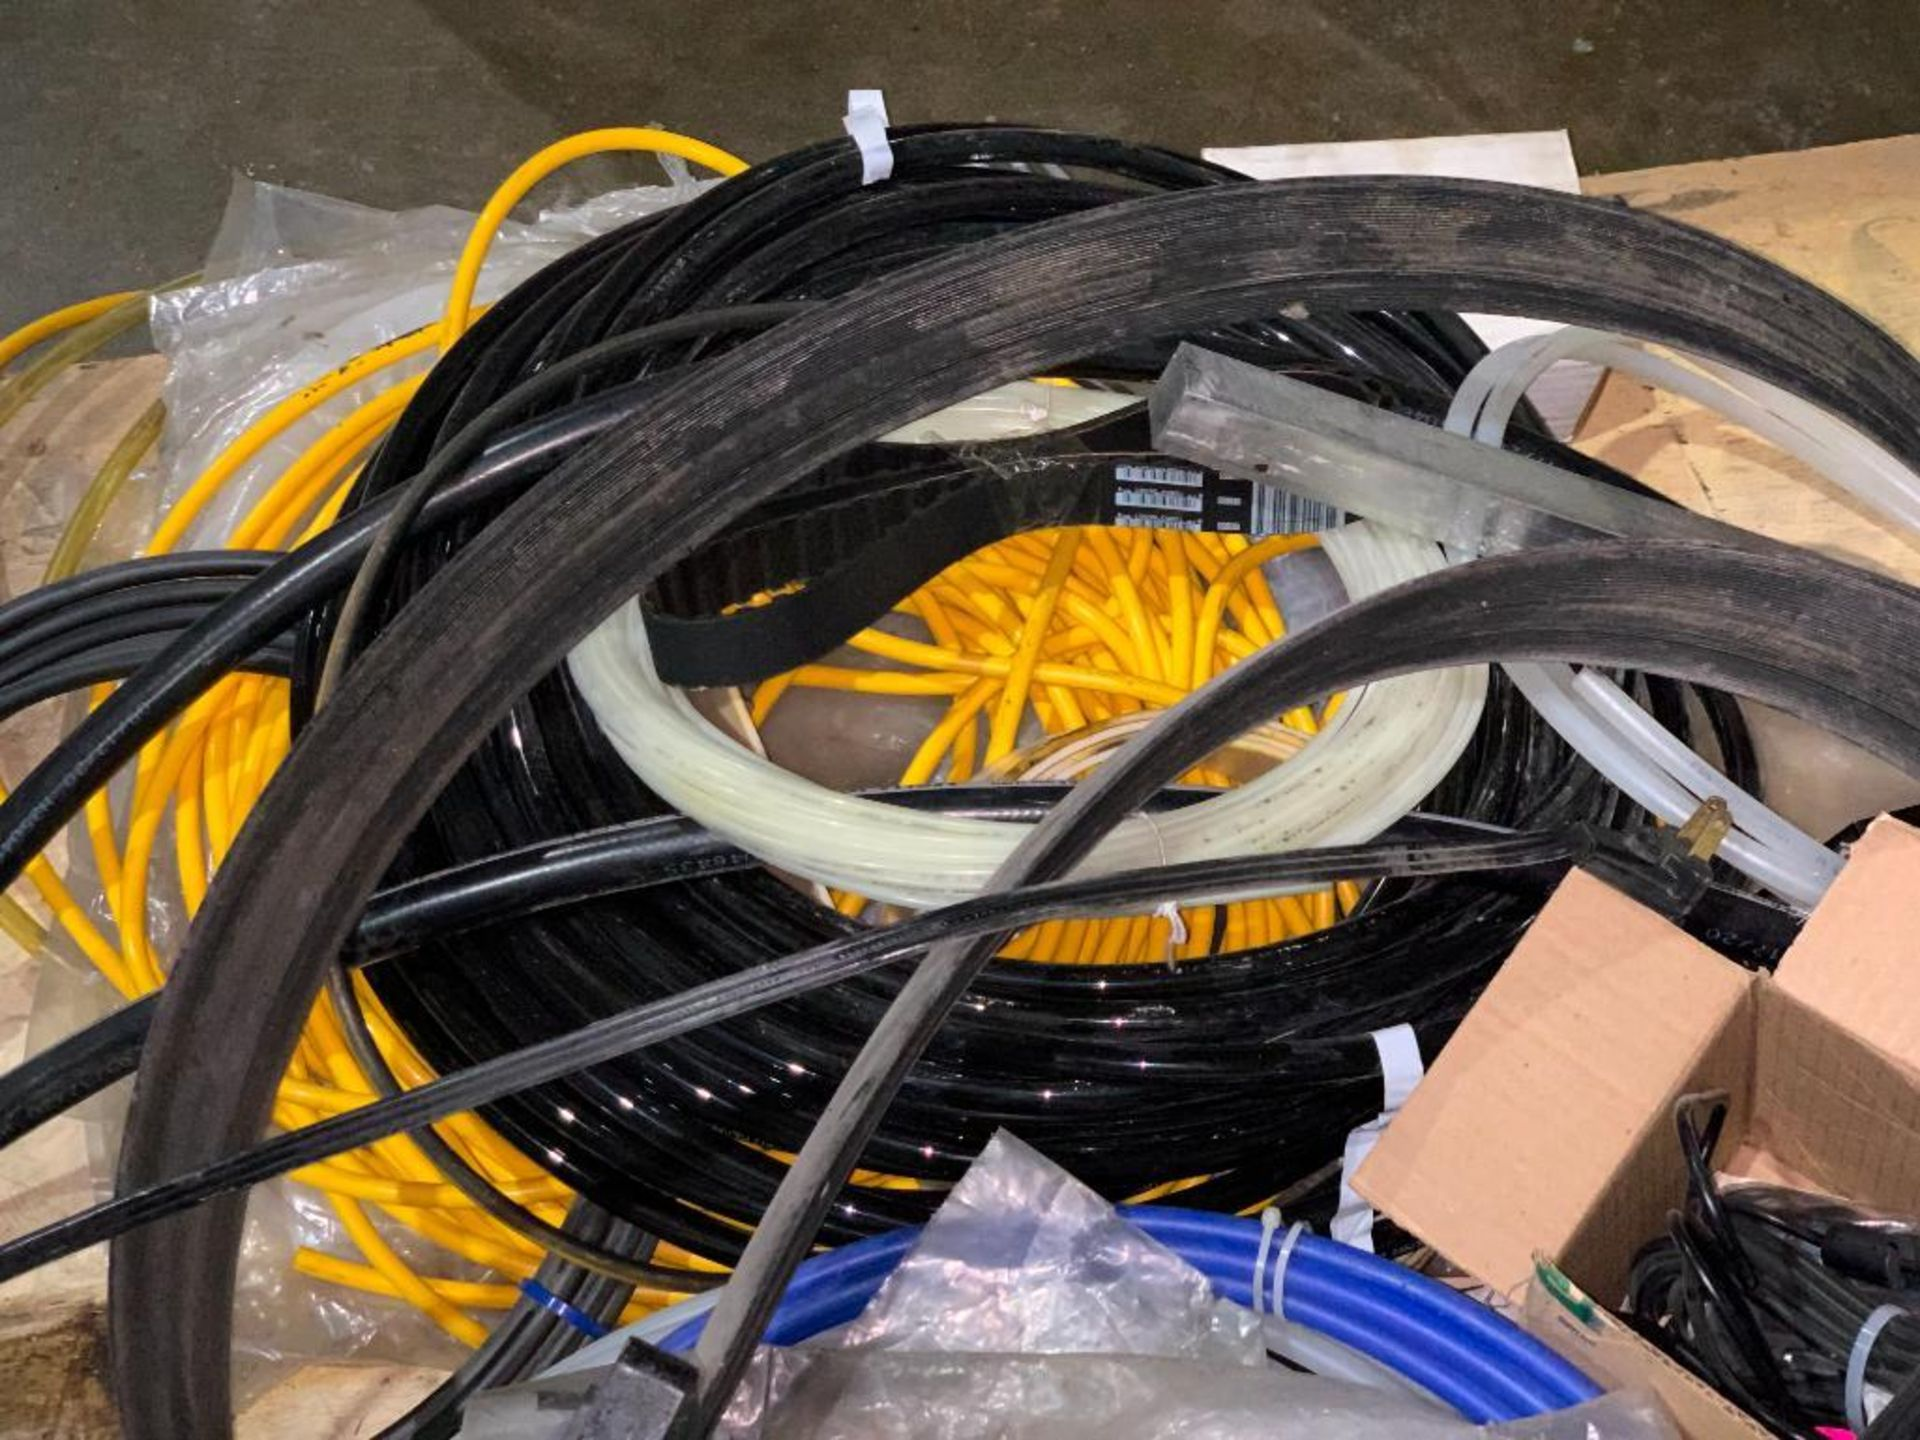 hoses, cords, and oil seals - Image 5 of 7